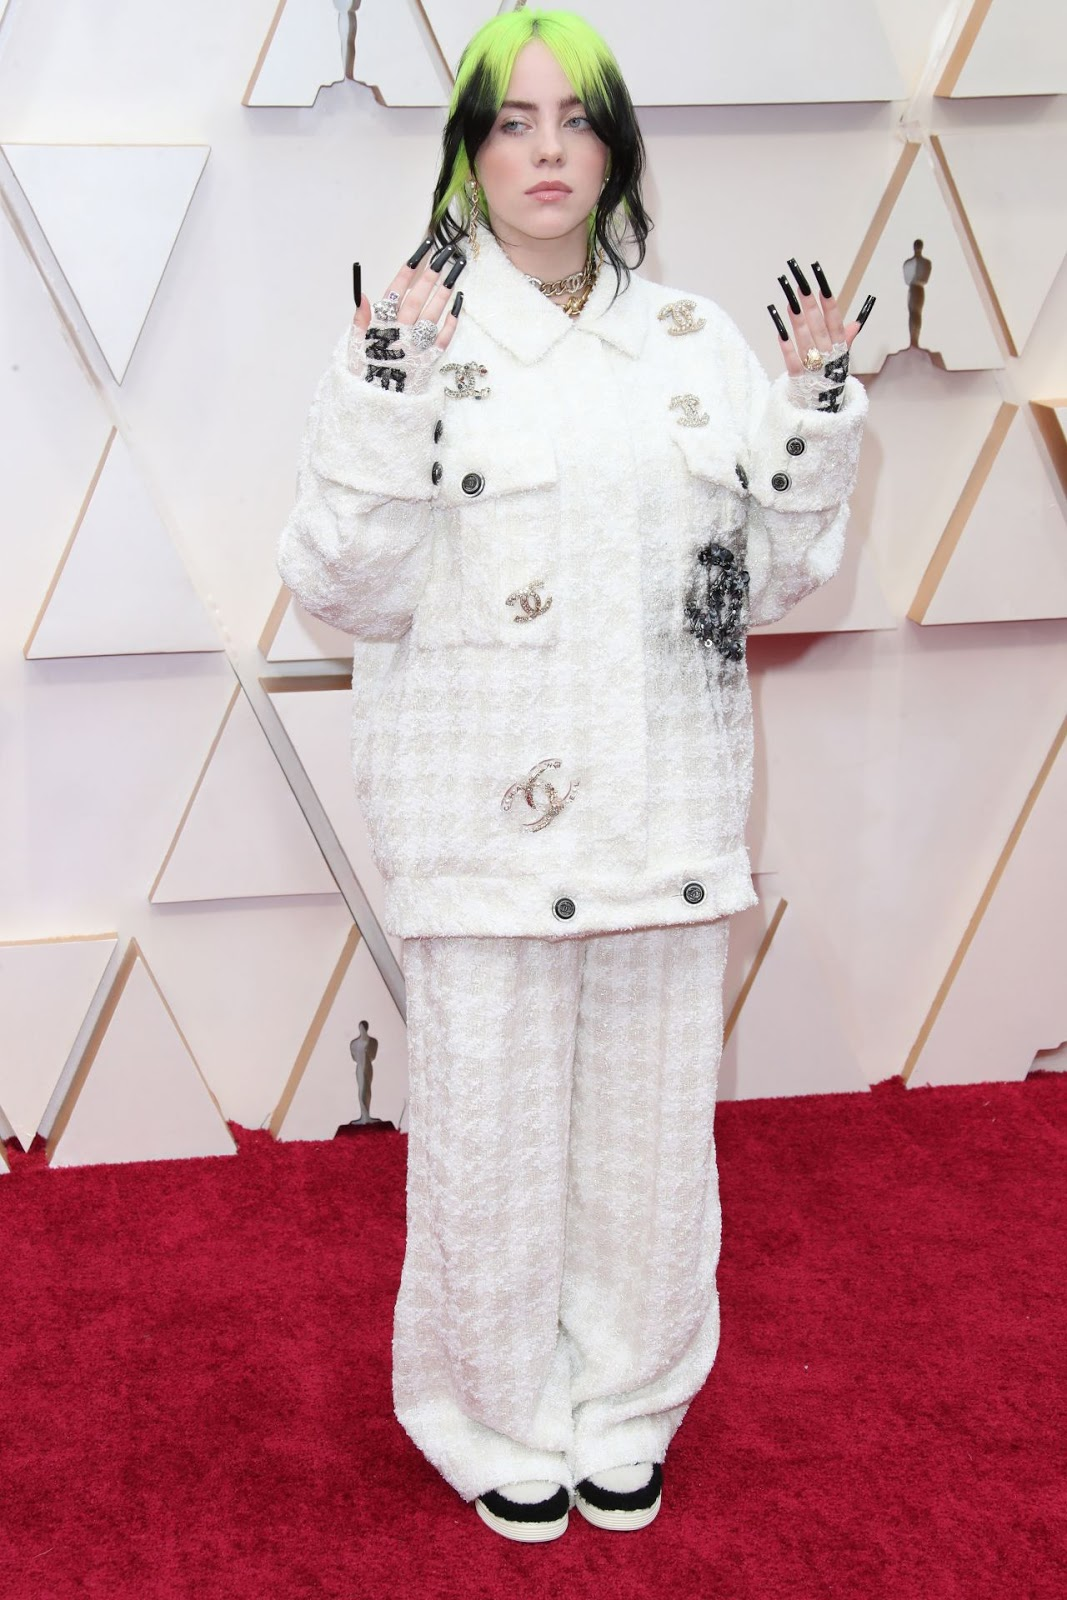 Billie Eilish walks the 2020 Oscars red carpet in head to toe Chanel